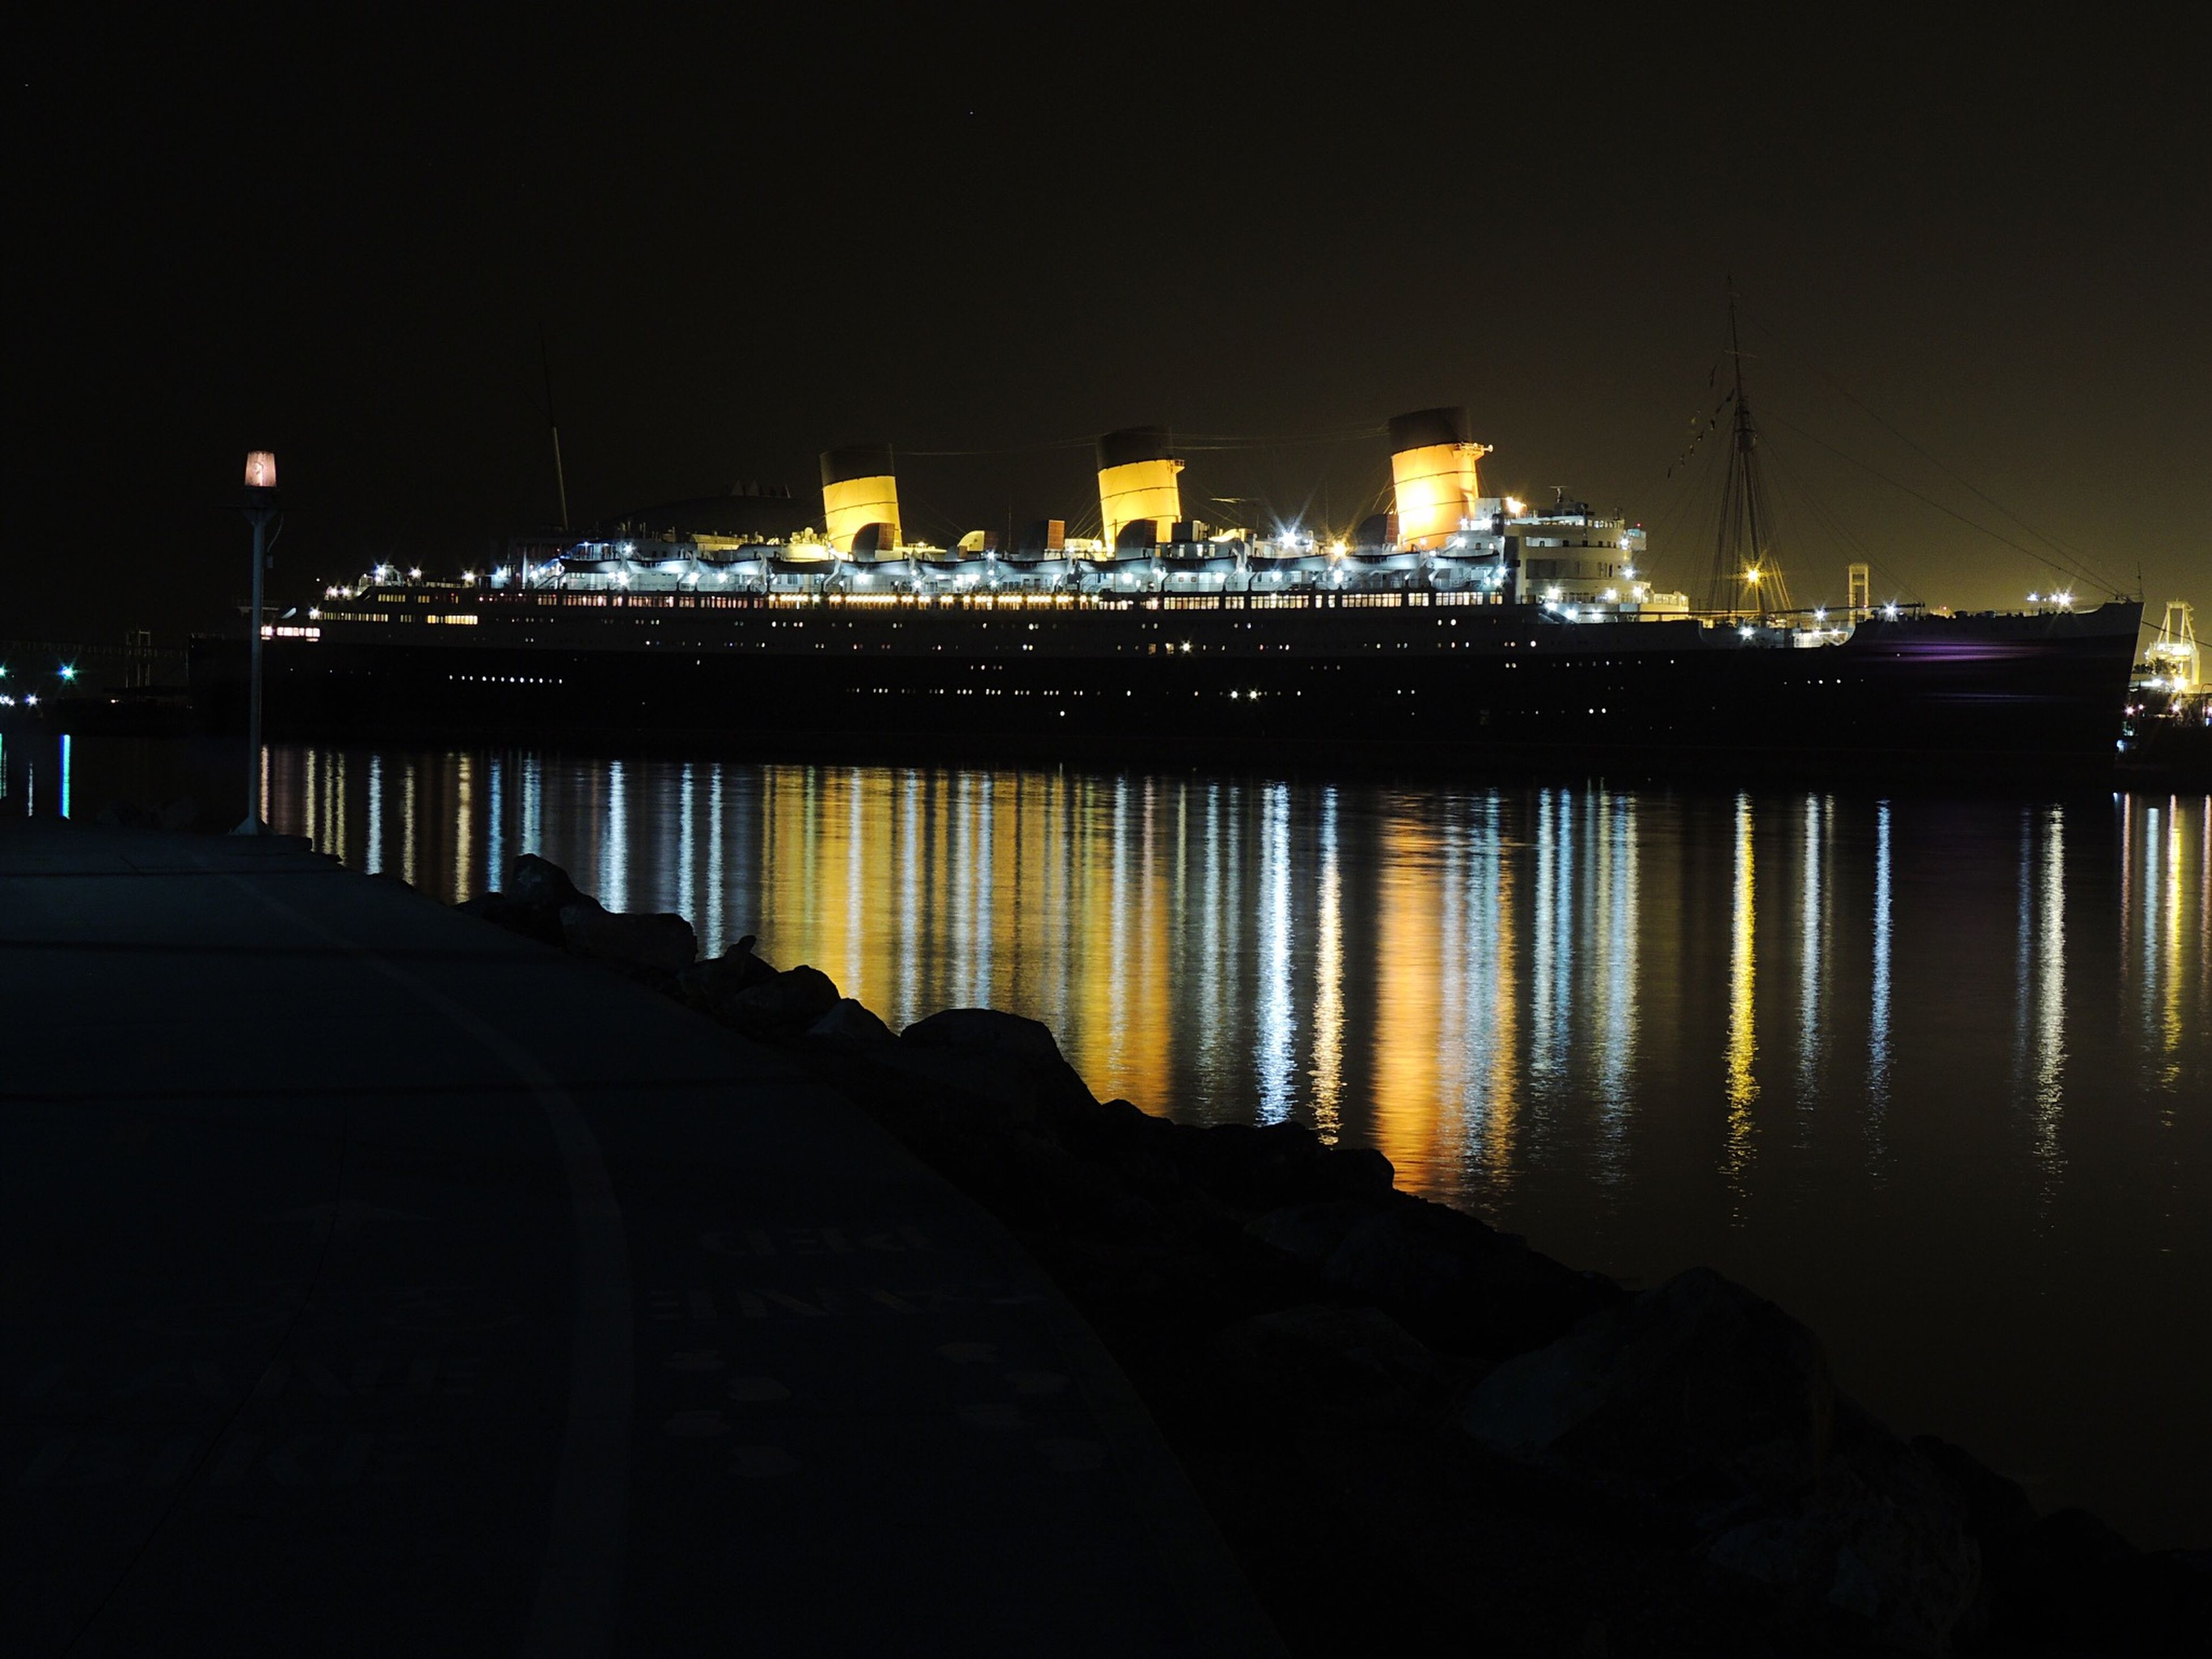 water, illuminated, night, built structure, river, architecture, reflection, sea, city, building exterior, street light, pier, waterfront, transportation, bridge - man made structure, sky, clear sky, connection, lighting equipment, dark